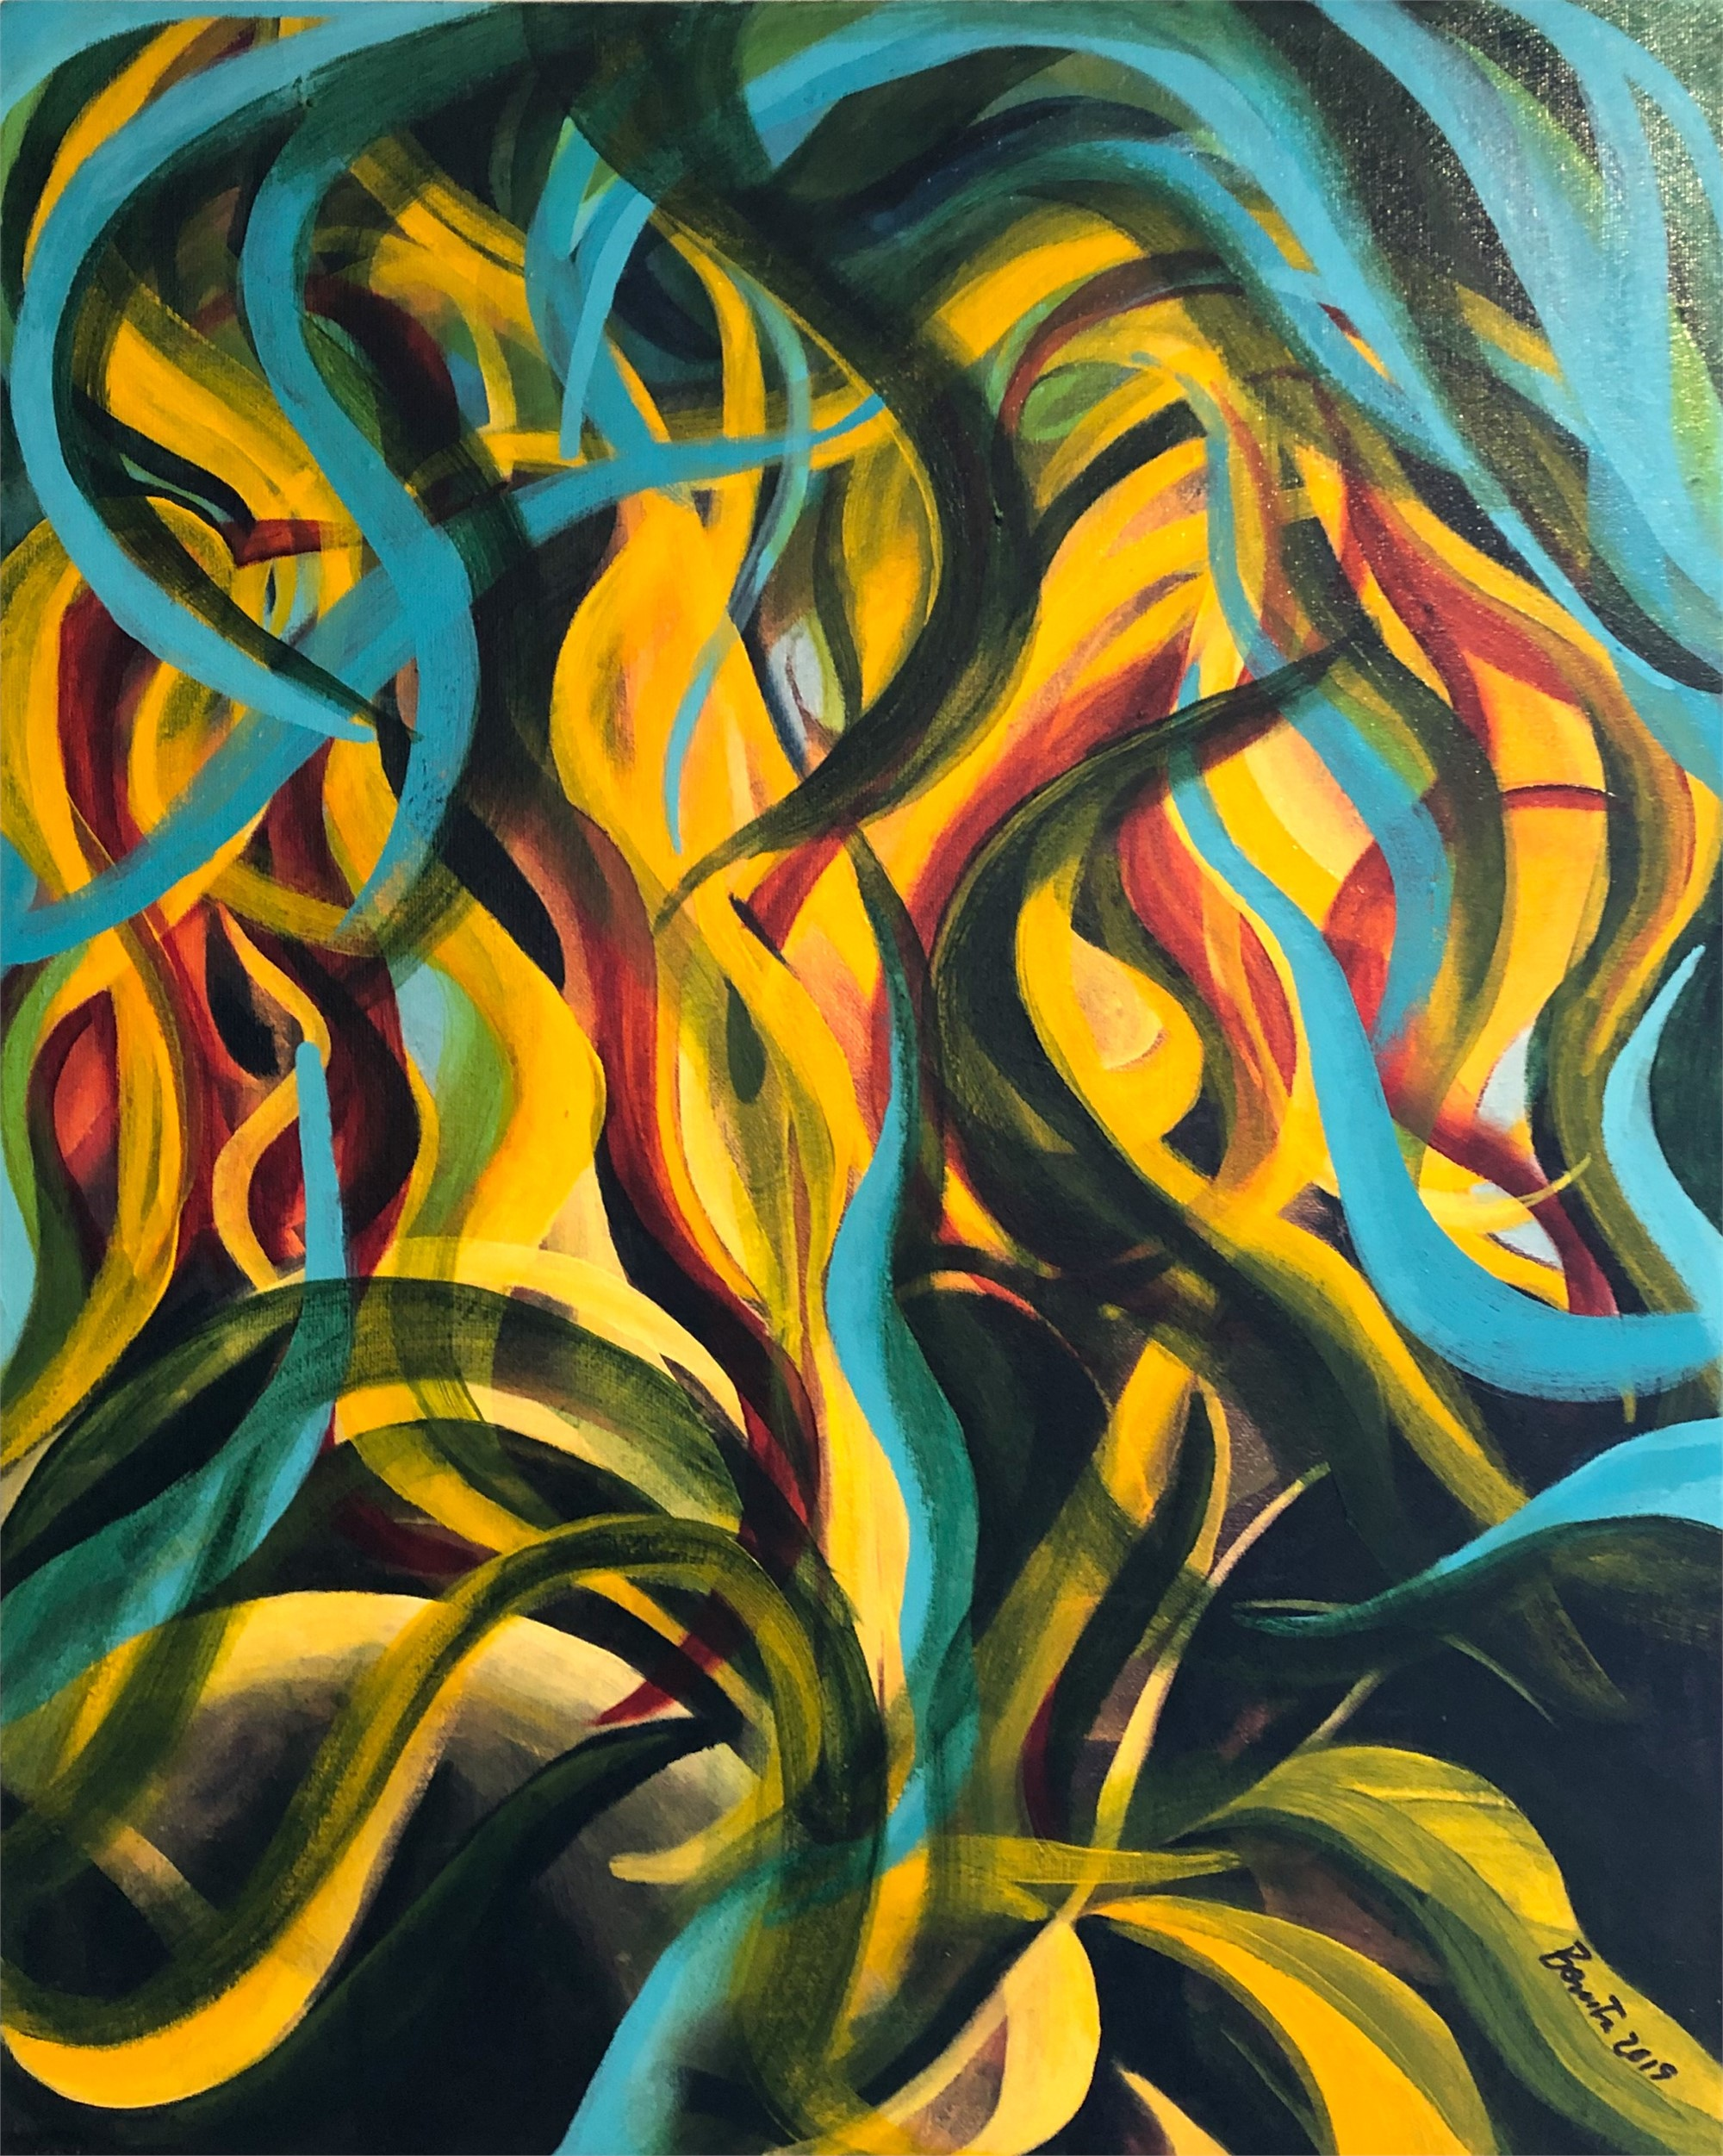 Fire Flower Abstract by Benita Cole (McMinnville, OR)